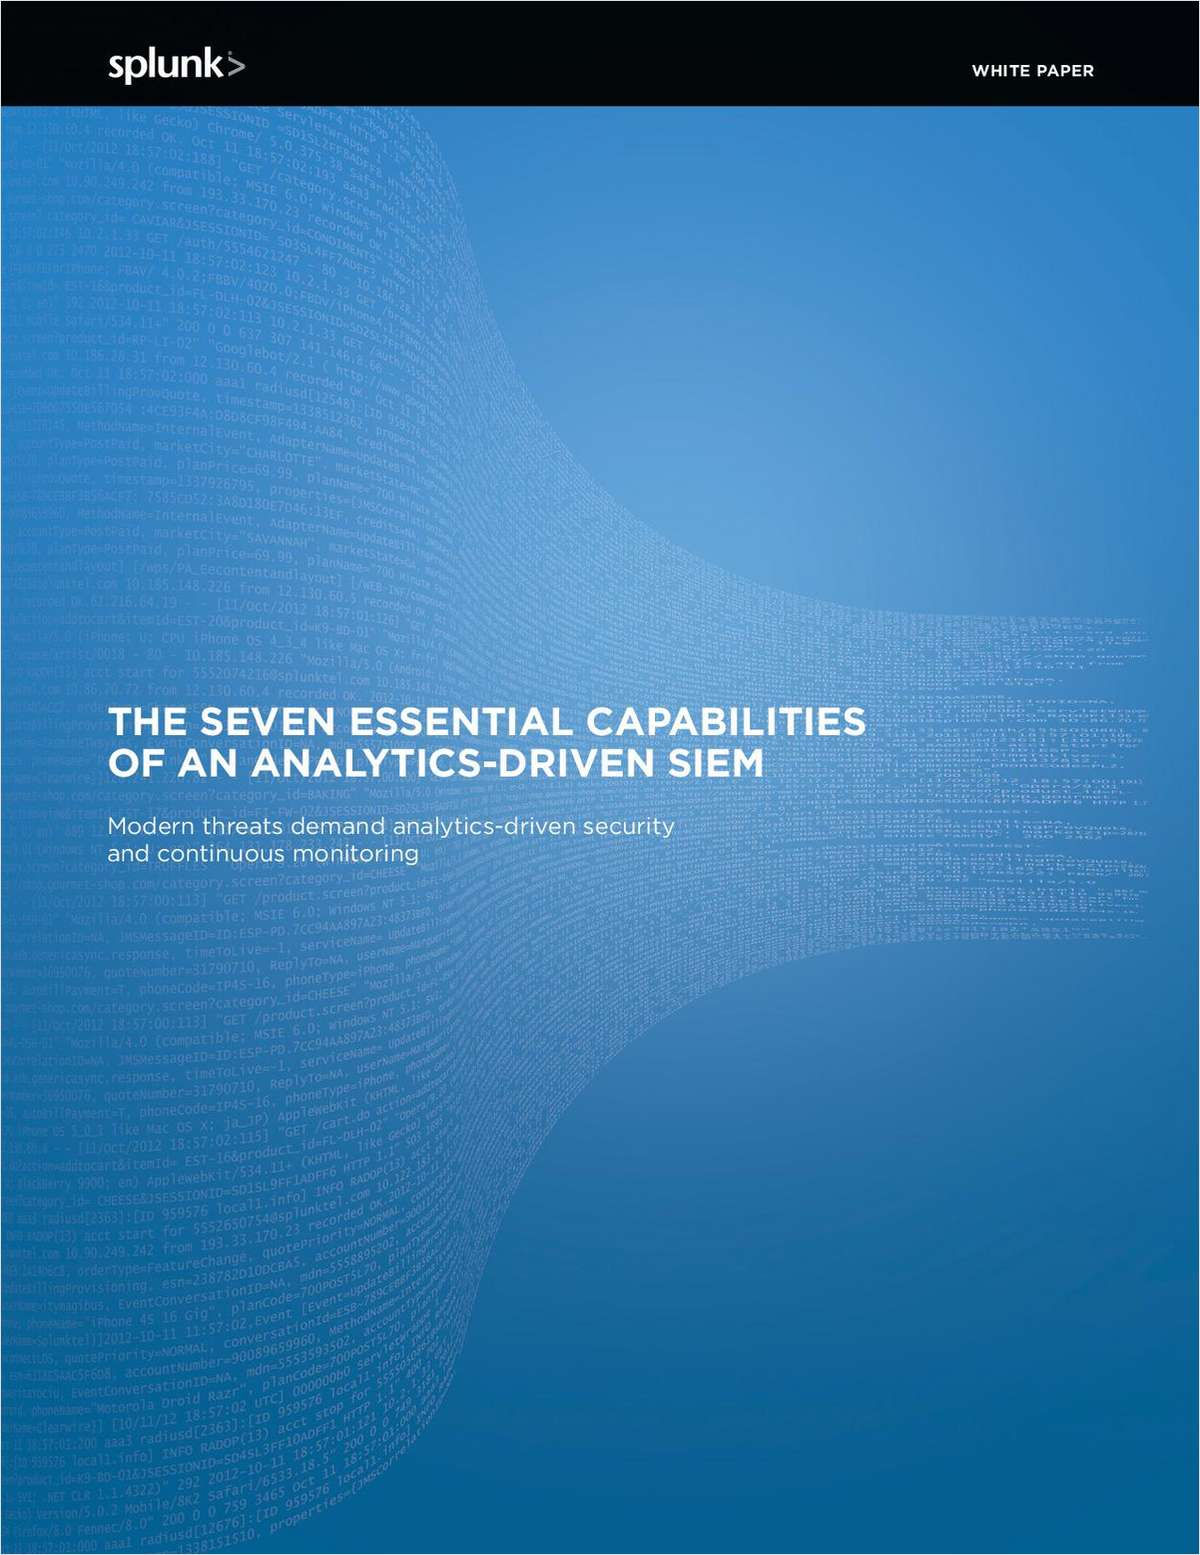 The Seven Essential Capabilities of an Analytics-Driven SIEM